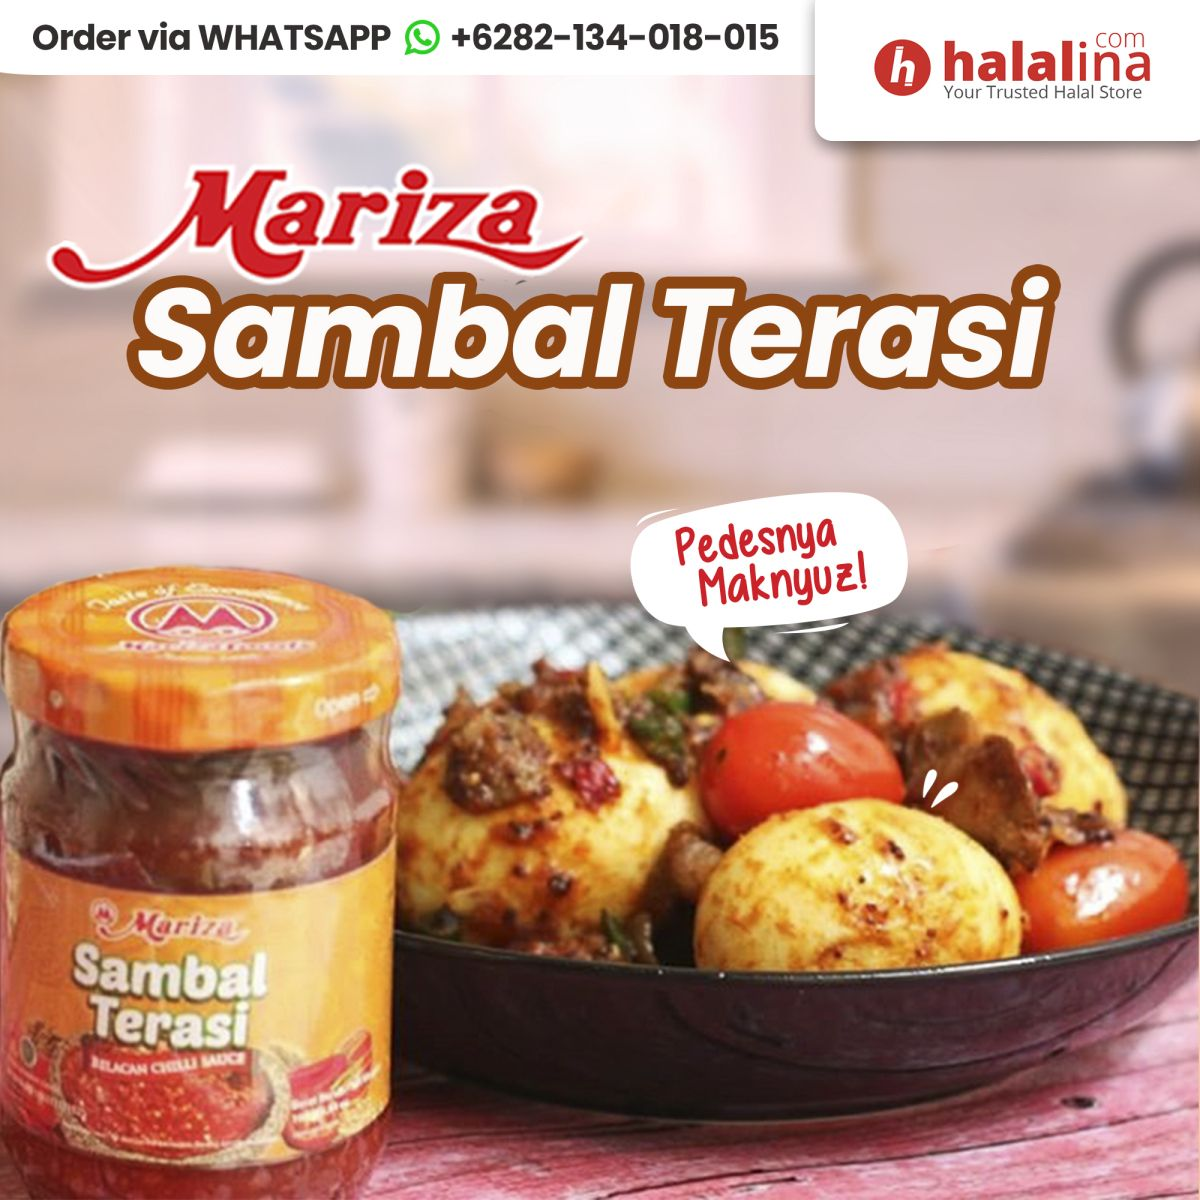 Halalina Phone 62 821 3401 8015 Halal Meat Online Delivery Japan In 2020 Halal Recipes Halal Snacks Food